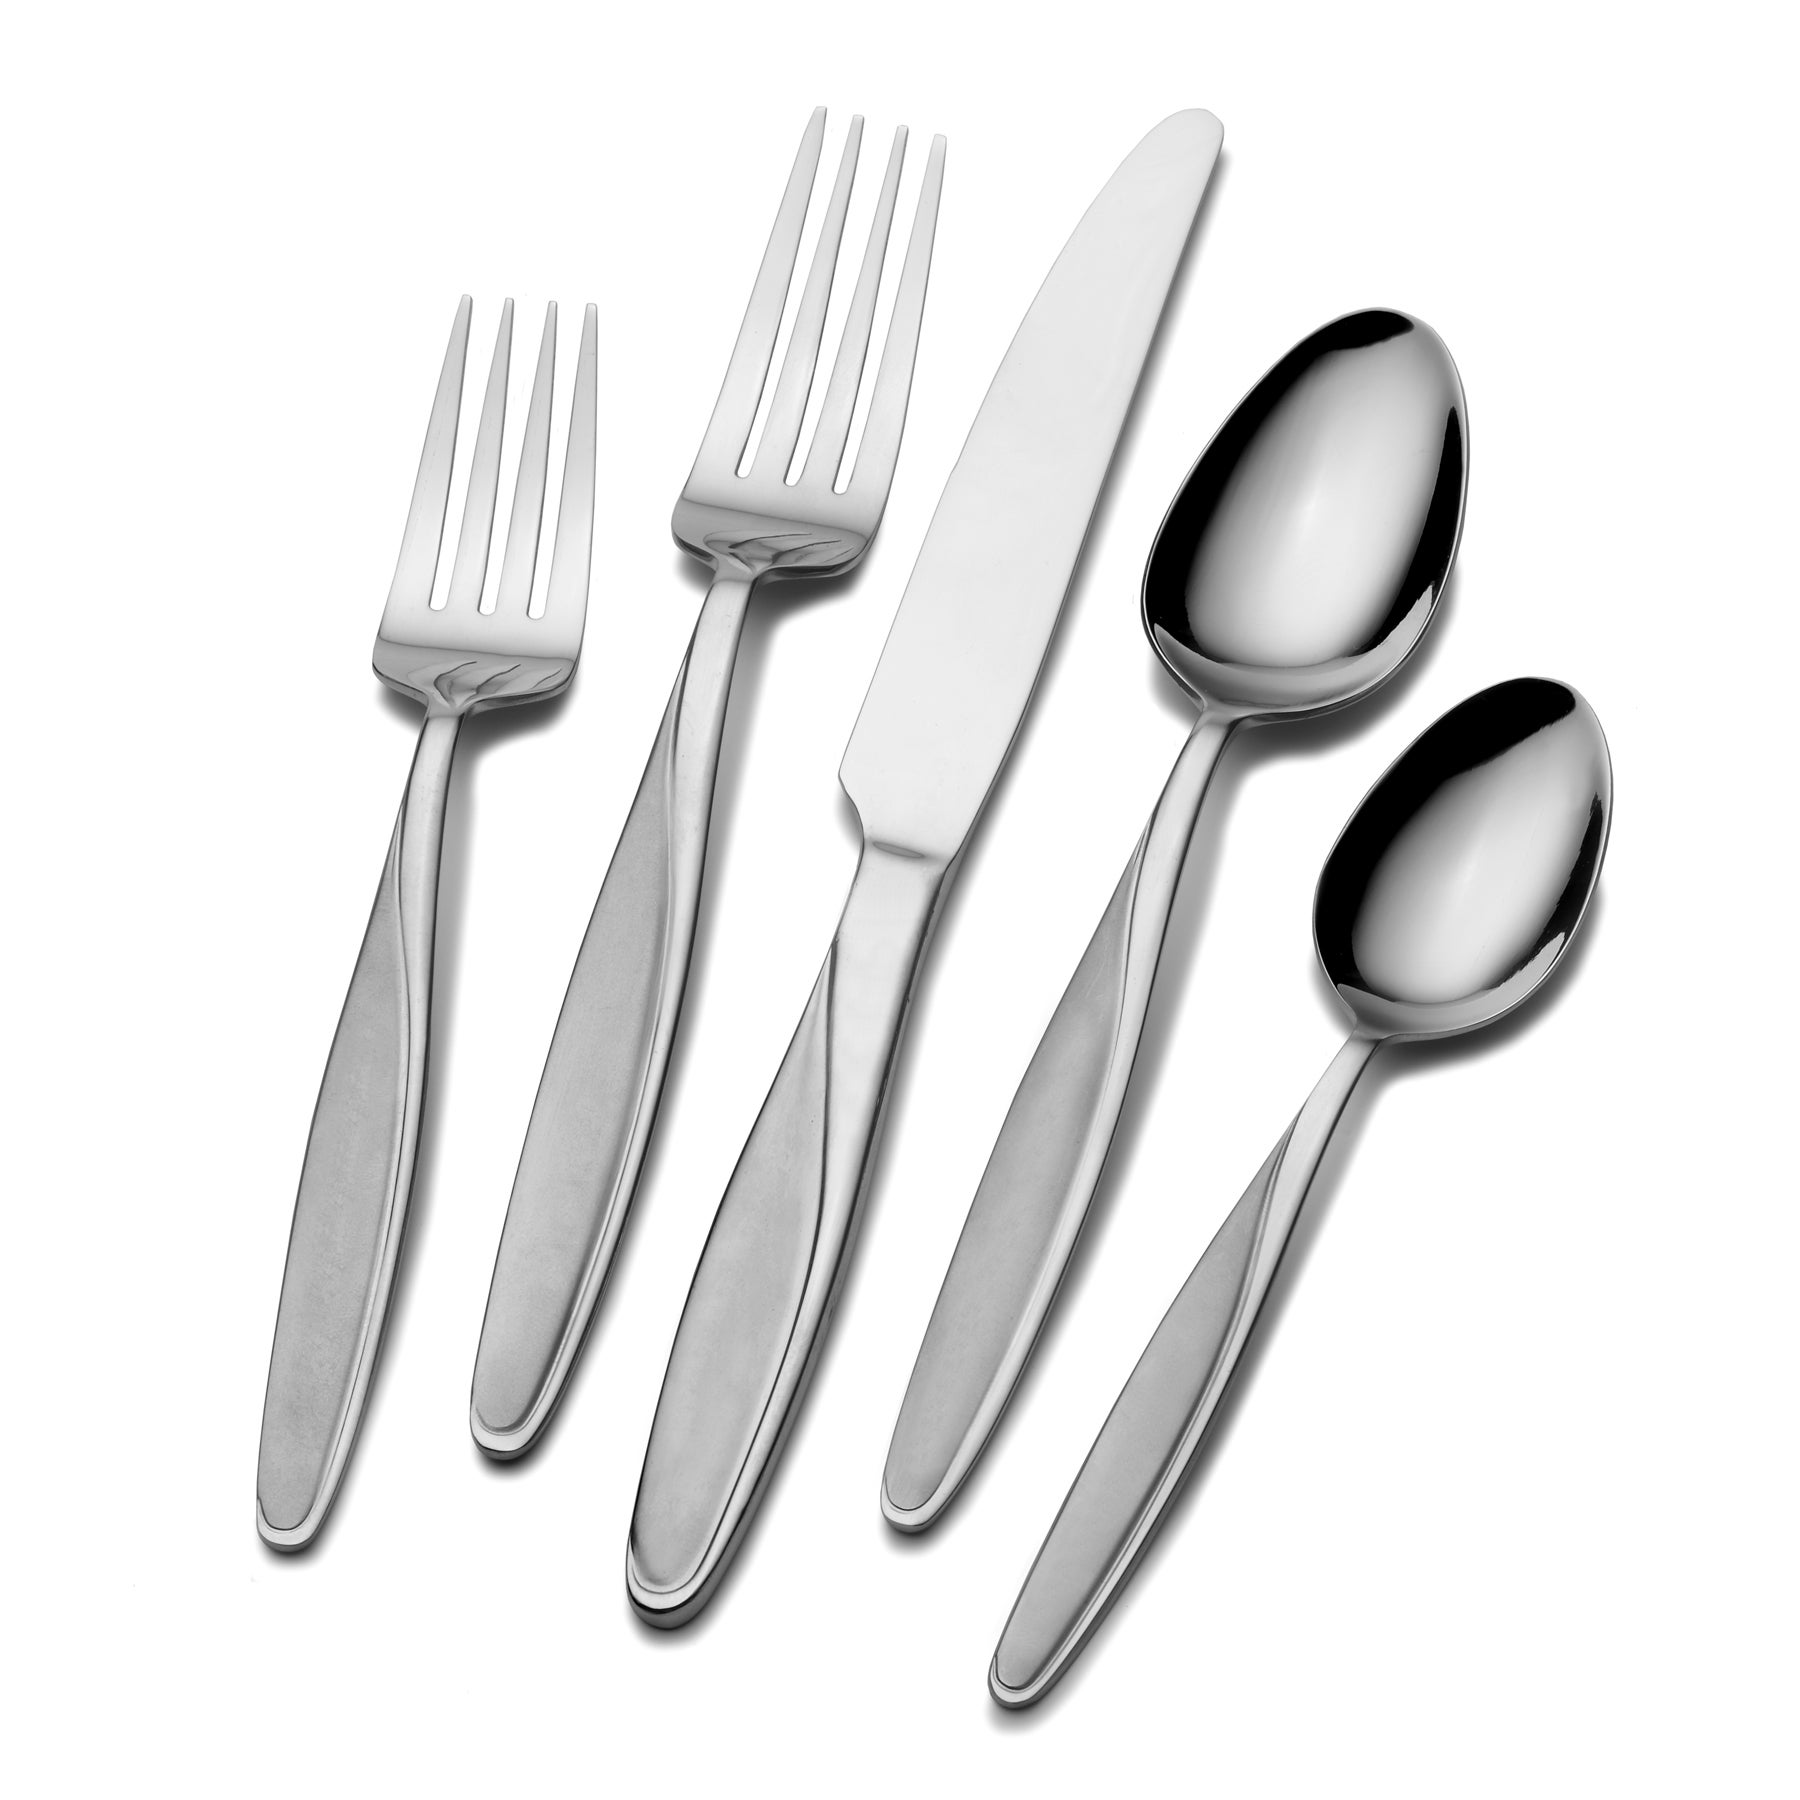 Towle Everyday Seabrook Frost 20 Piece Flatware Set